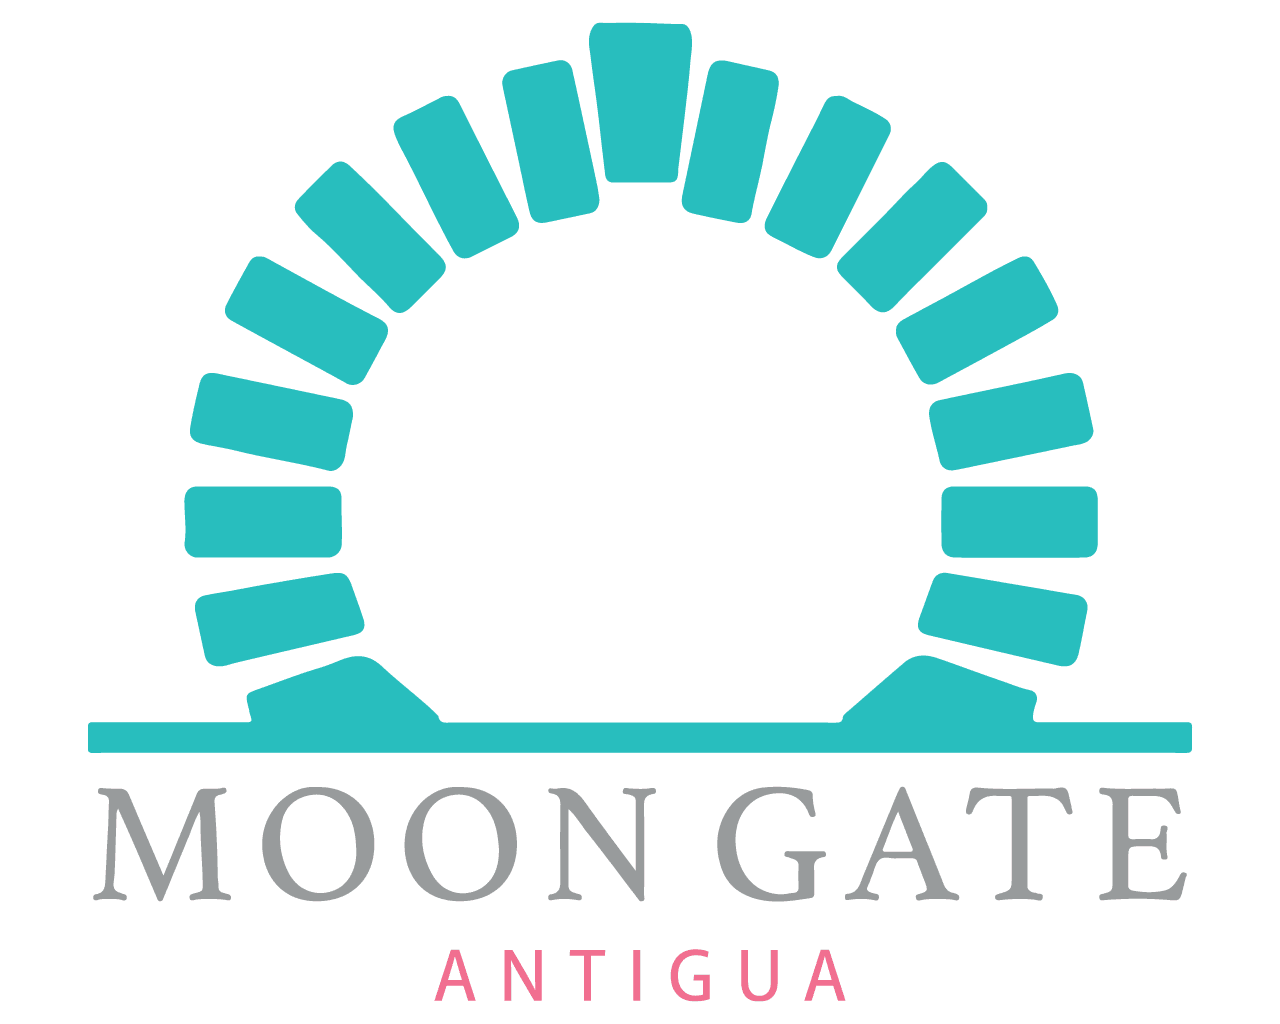 Moon Gate Antigua